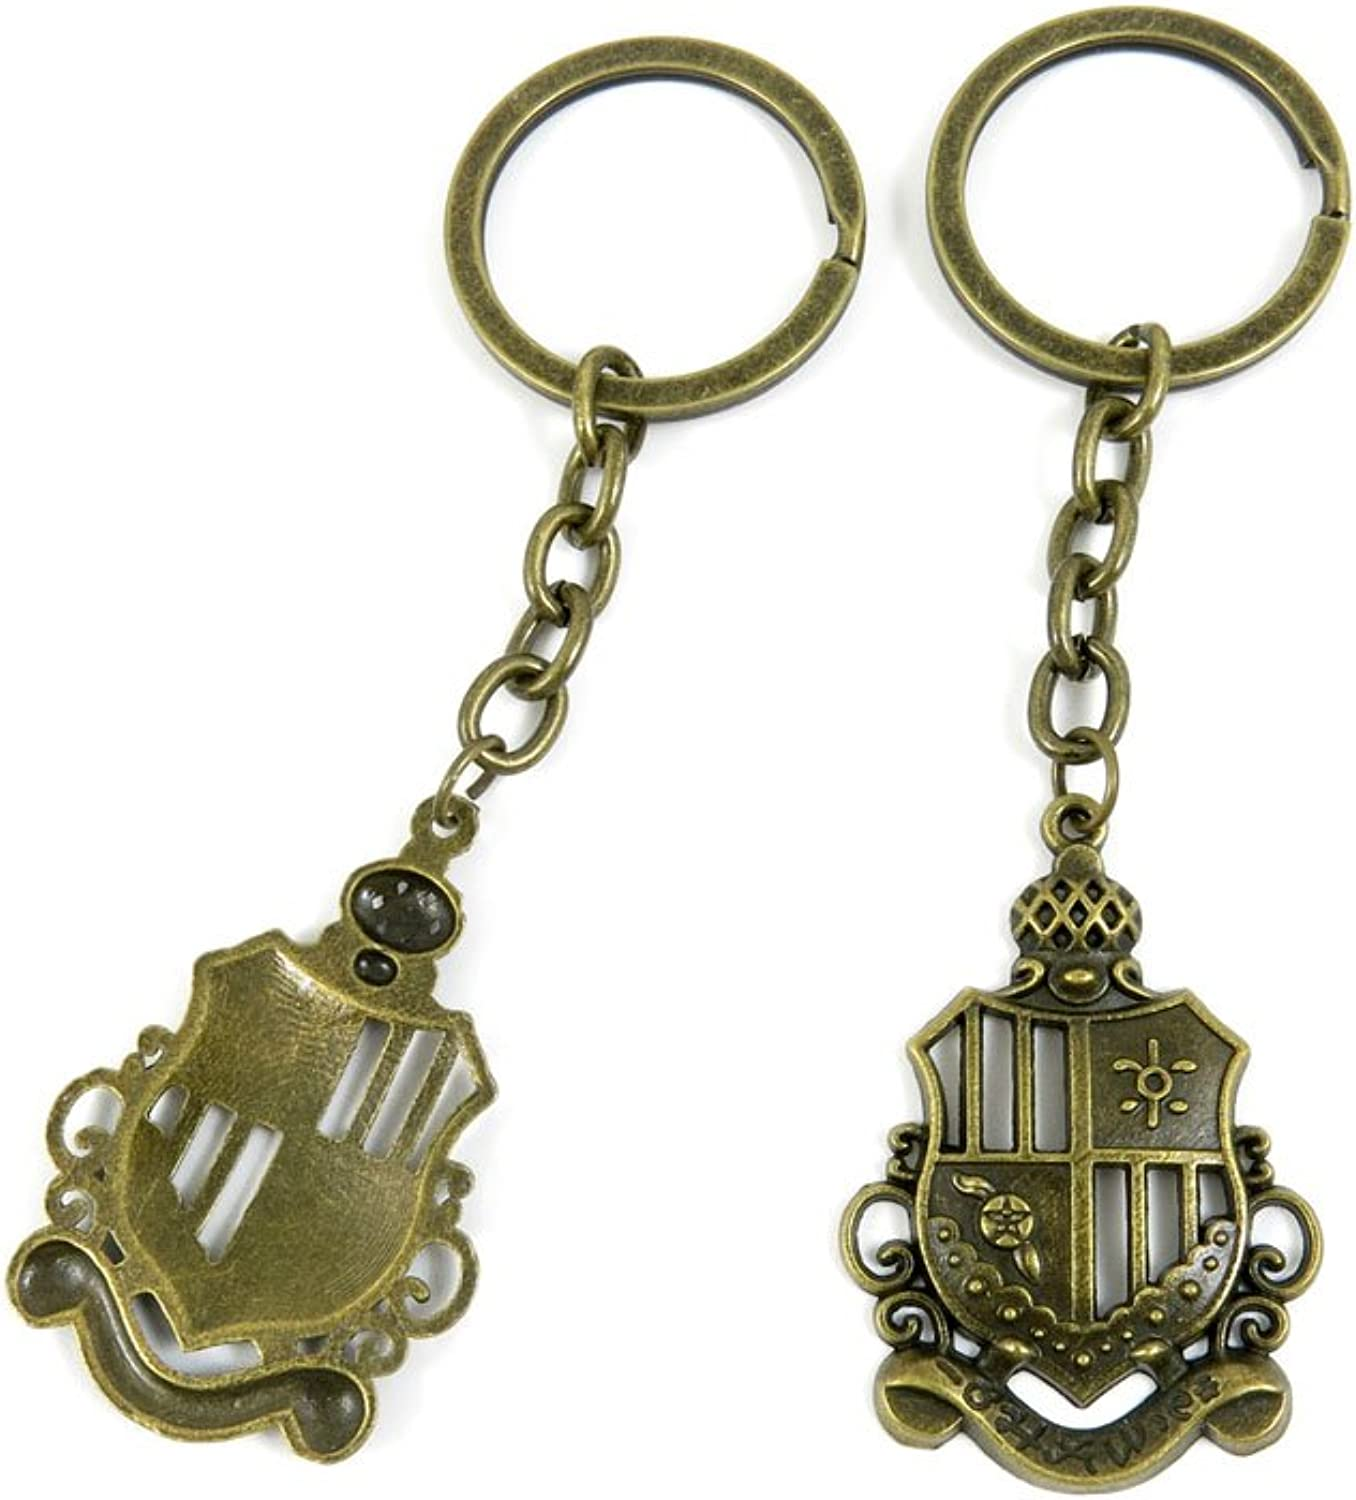 100 PCS Keyrings Keychains Key Ring Chains Tags Jewelry Findings Clasps Buckles Supplies H1OE5 Crown Shield